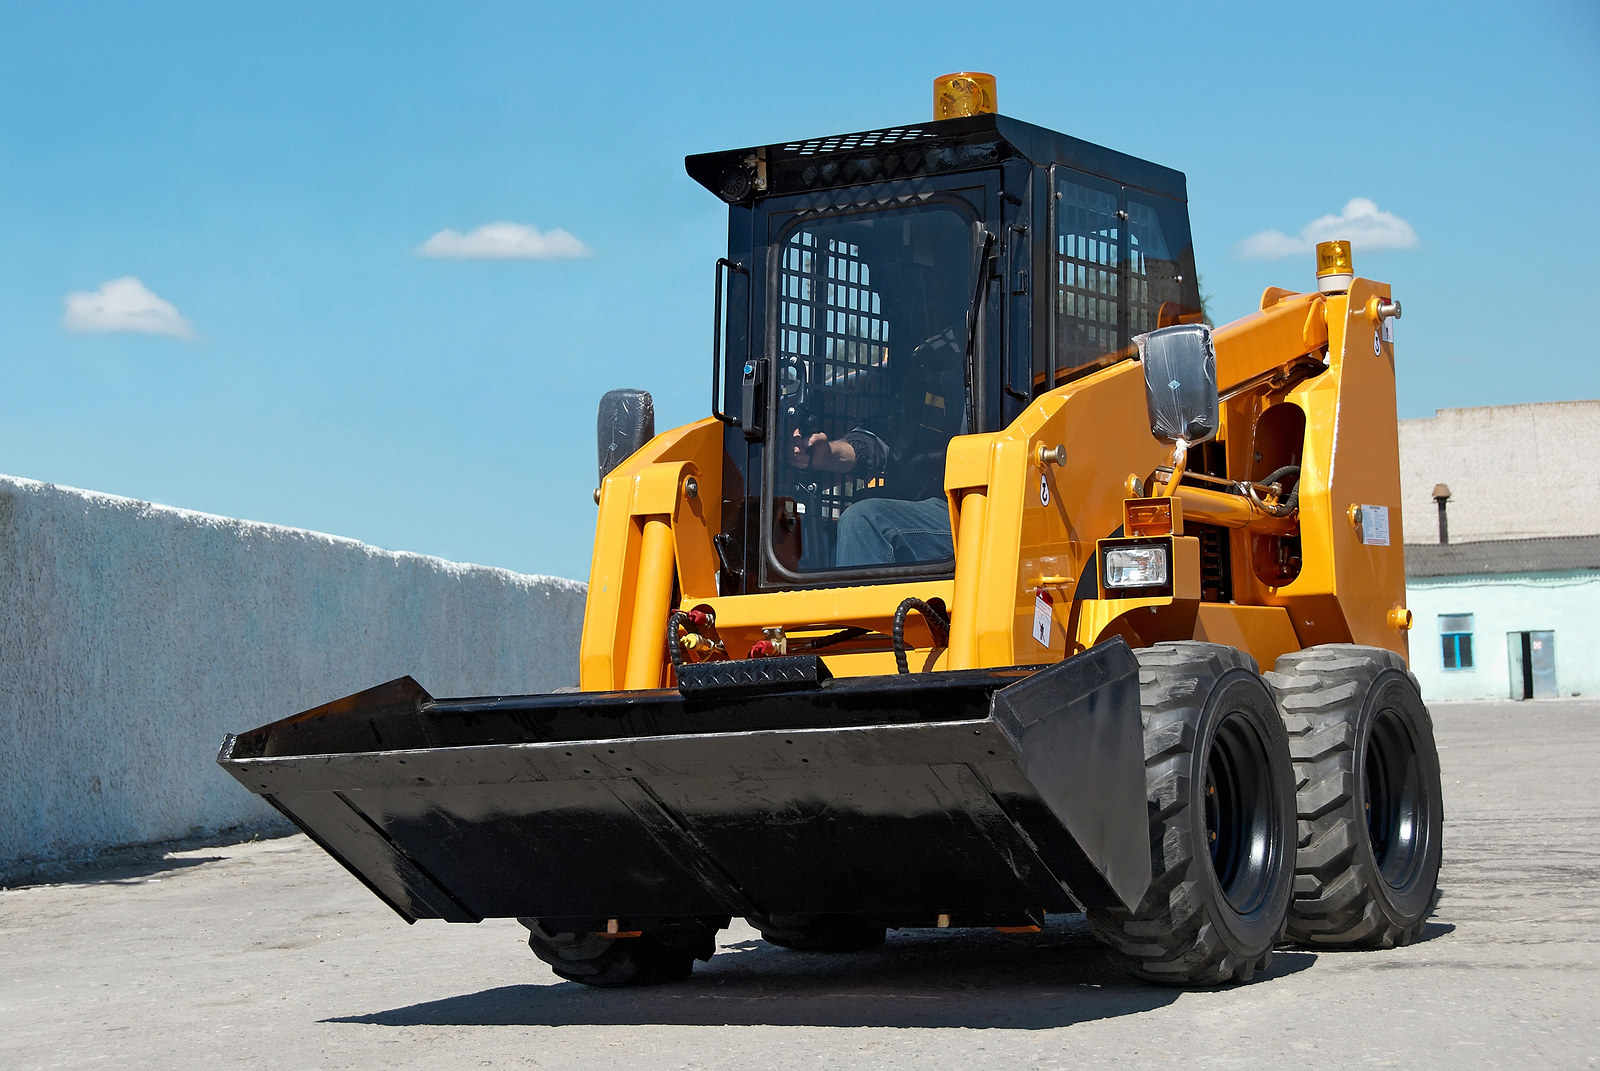 Skid Steer vs. Compact Wheel Loaders: Best Compact Equipment